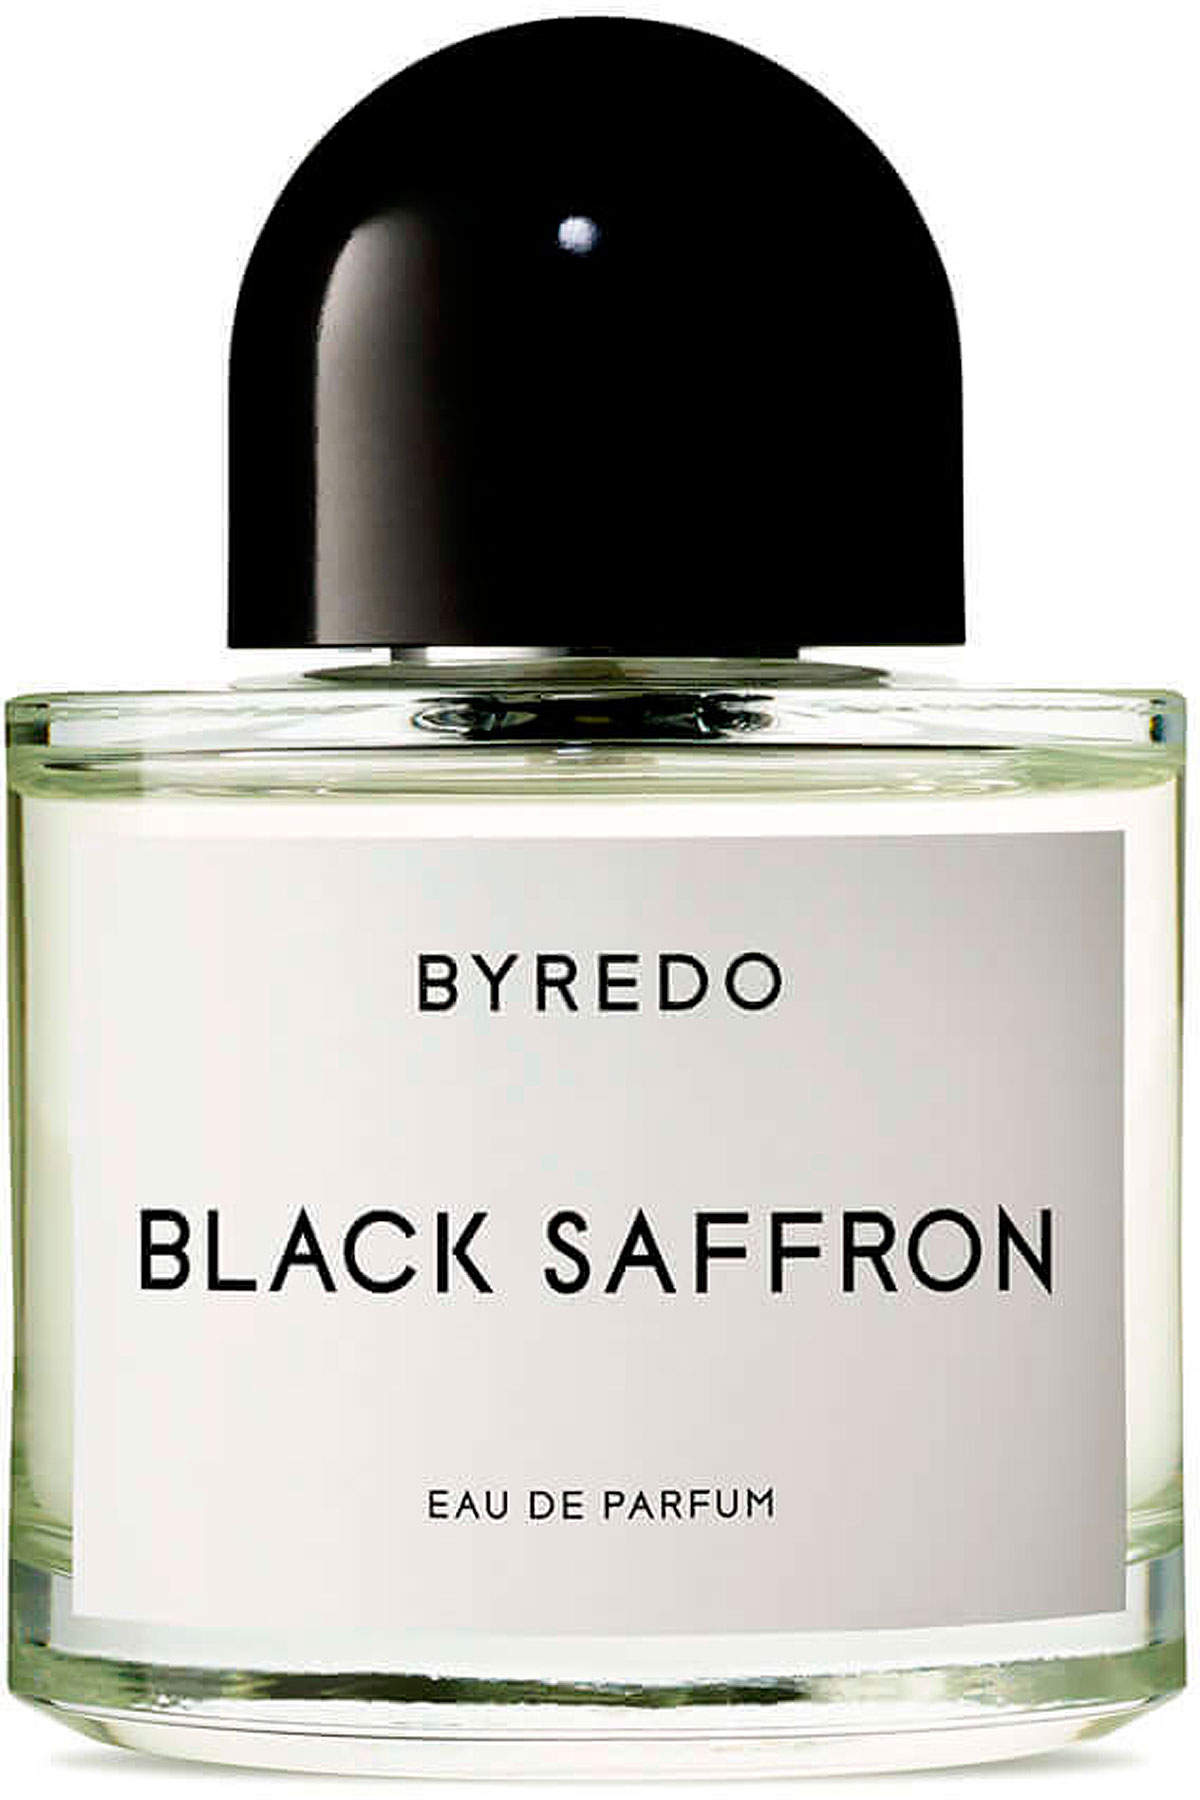 Byredo Fragrances for Women, Black Saffron - Eau De Parfum - 100 Ml, 2019, 100 ml